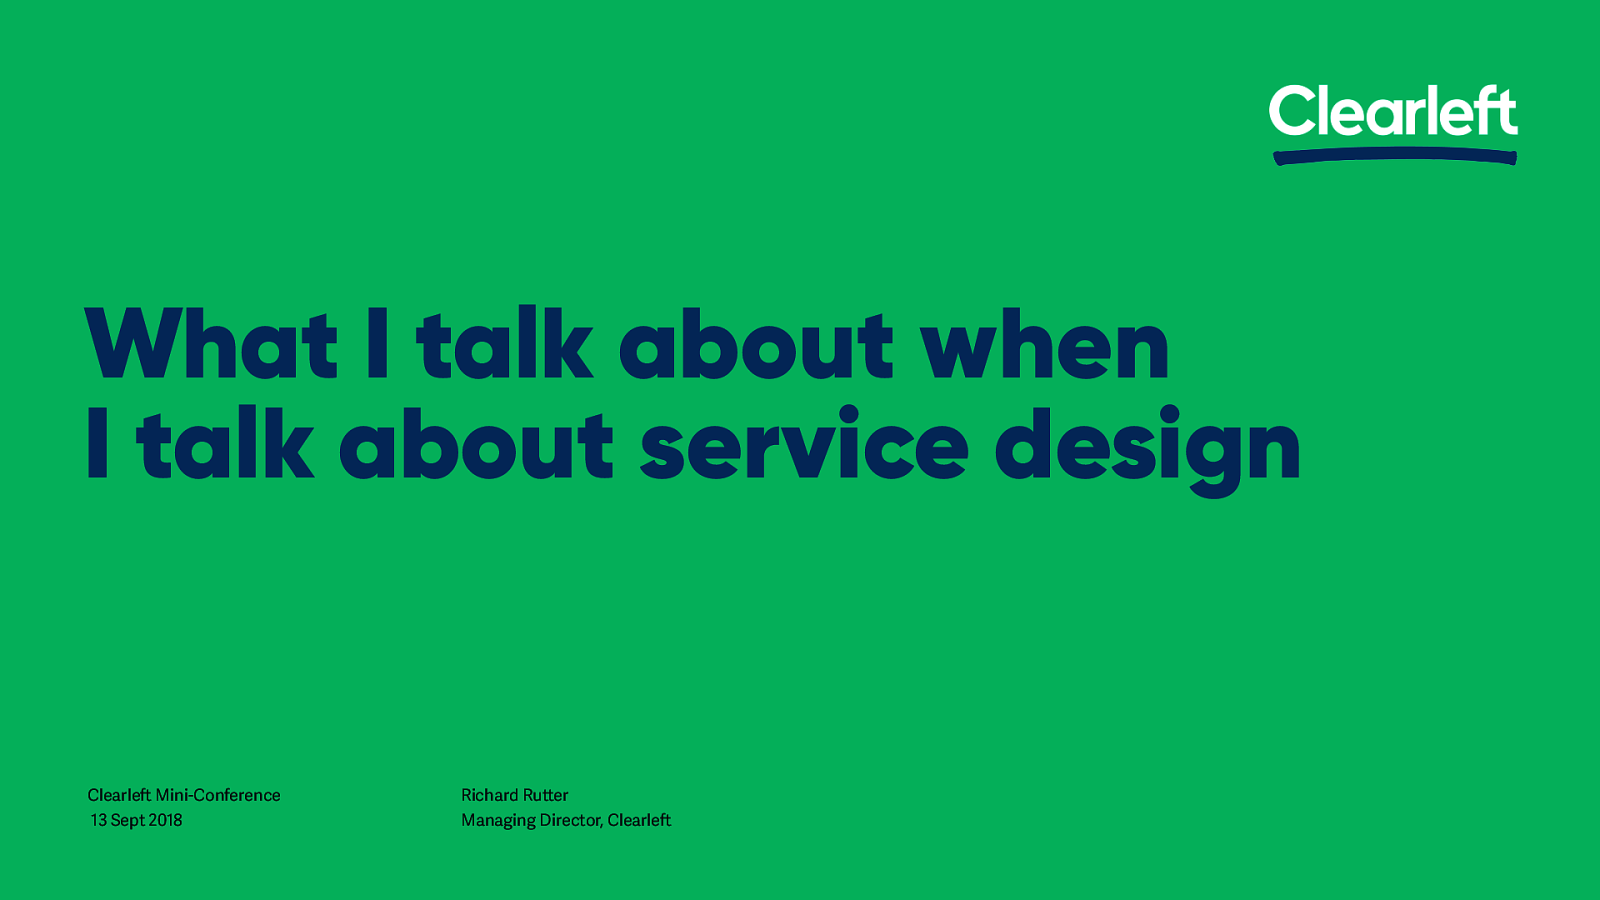 What I talk about when I talk about service design